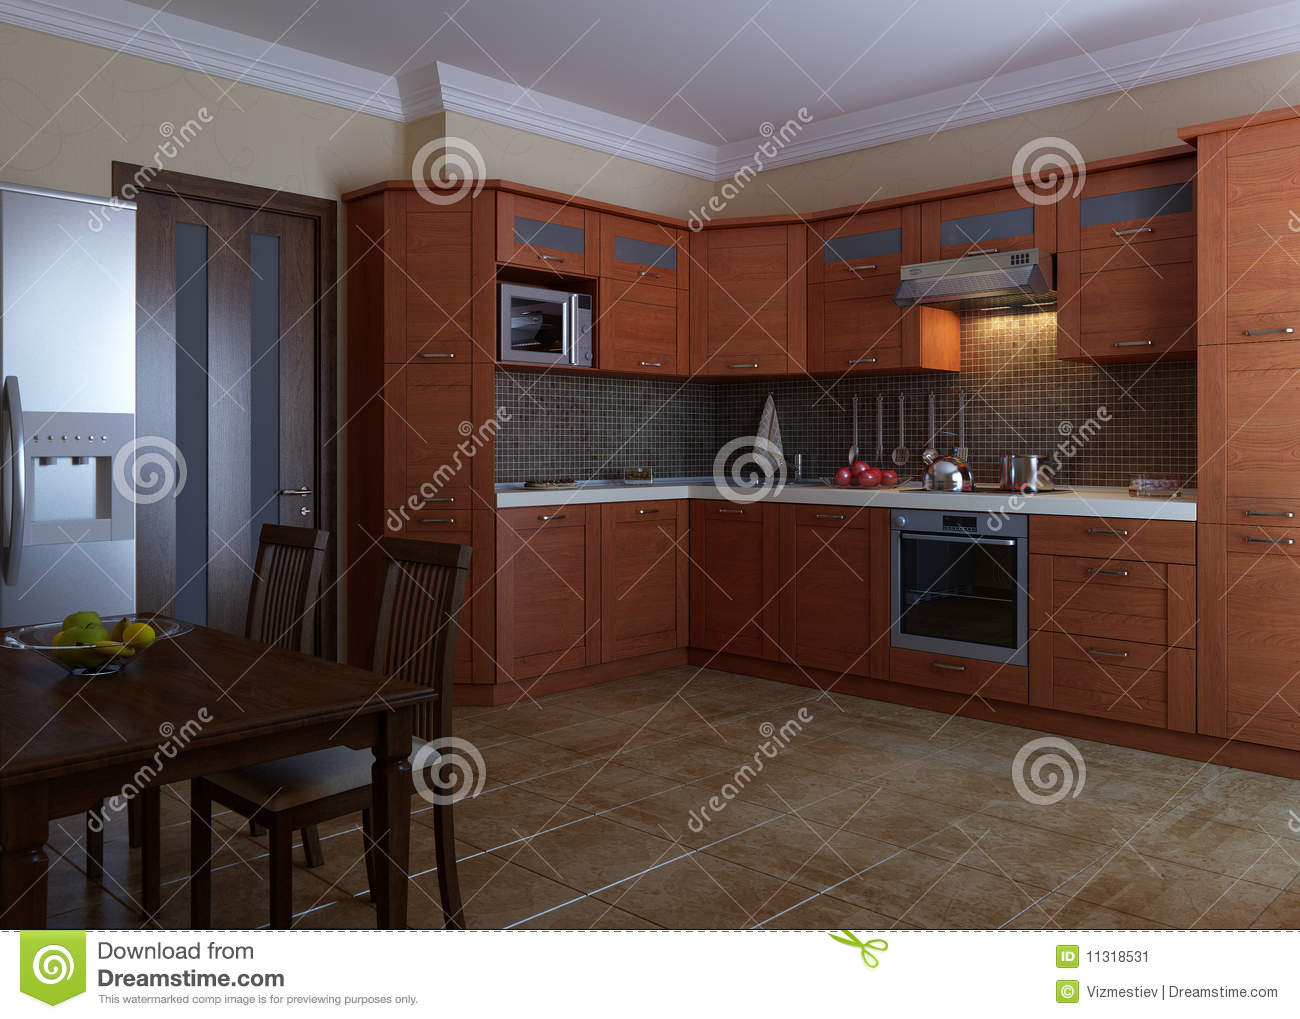 Cuisine En Bois Moderne kitchen design stock image. image of gray, house, light